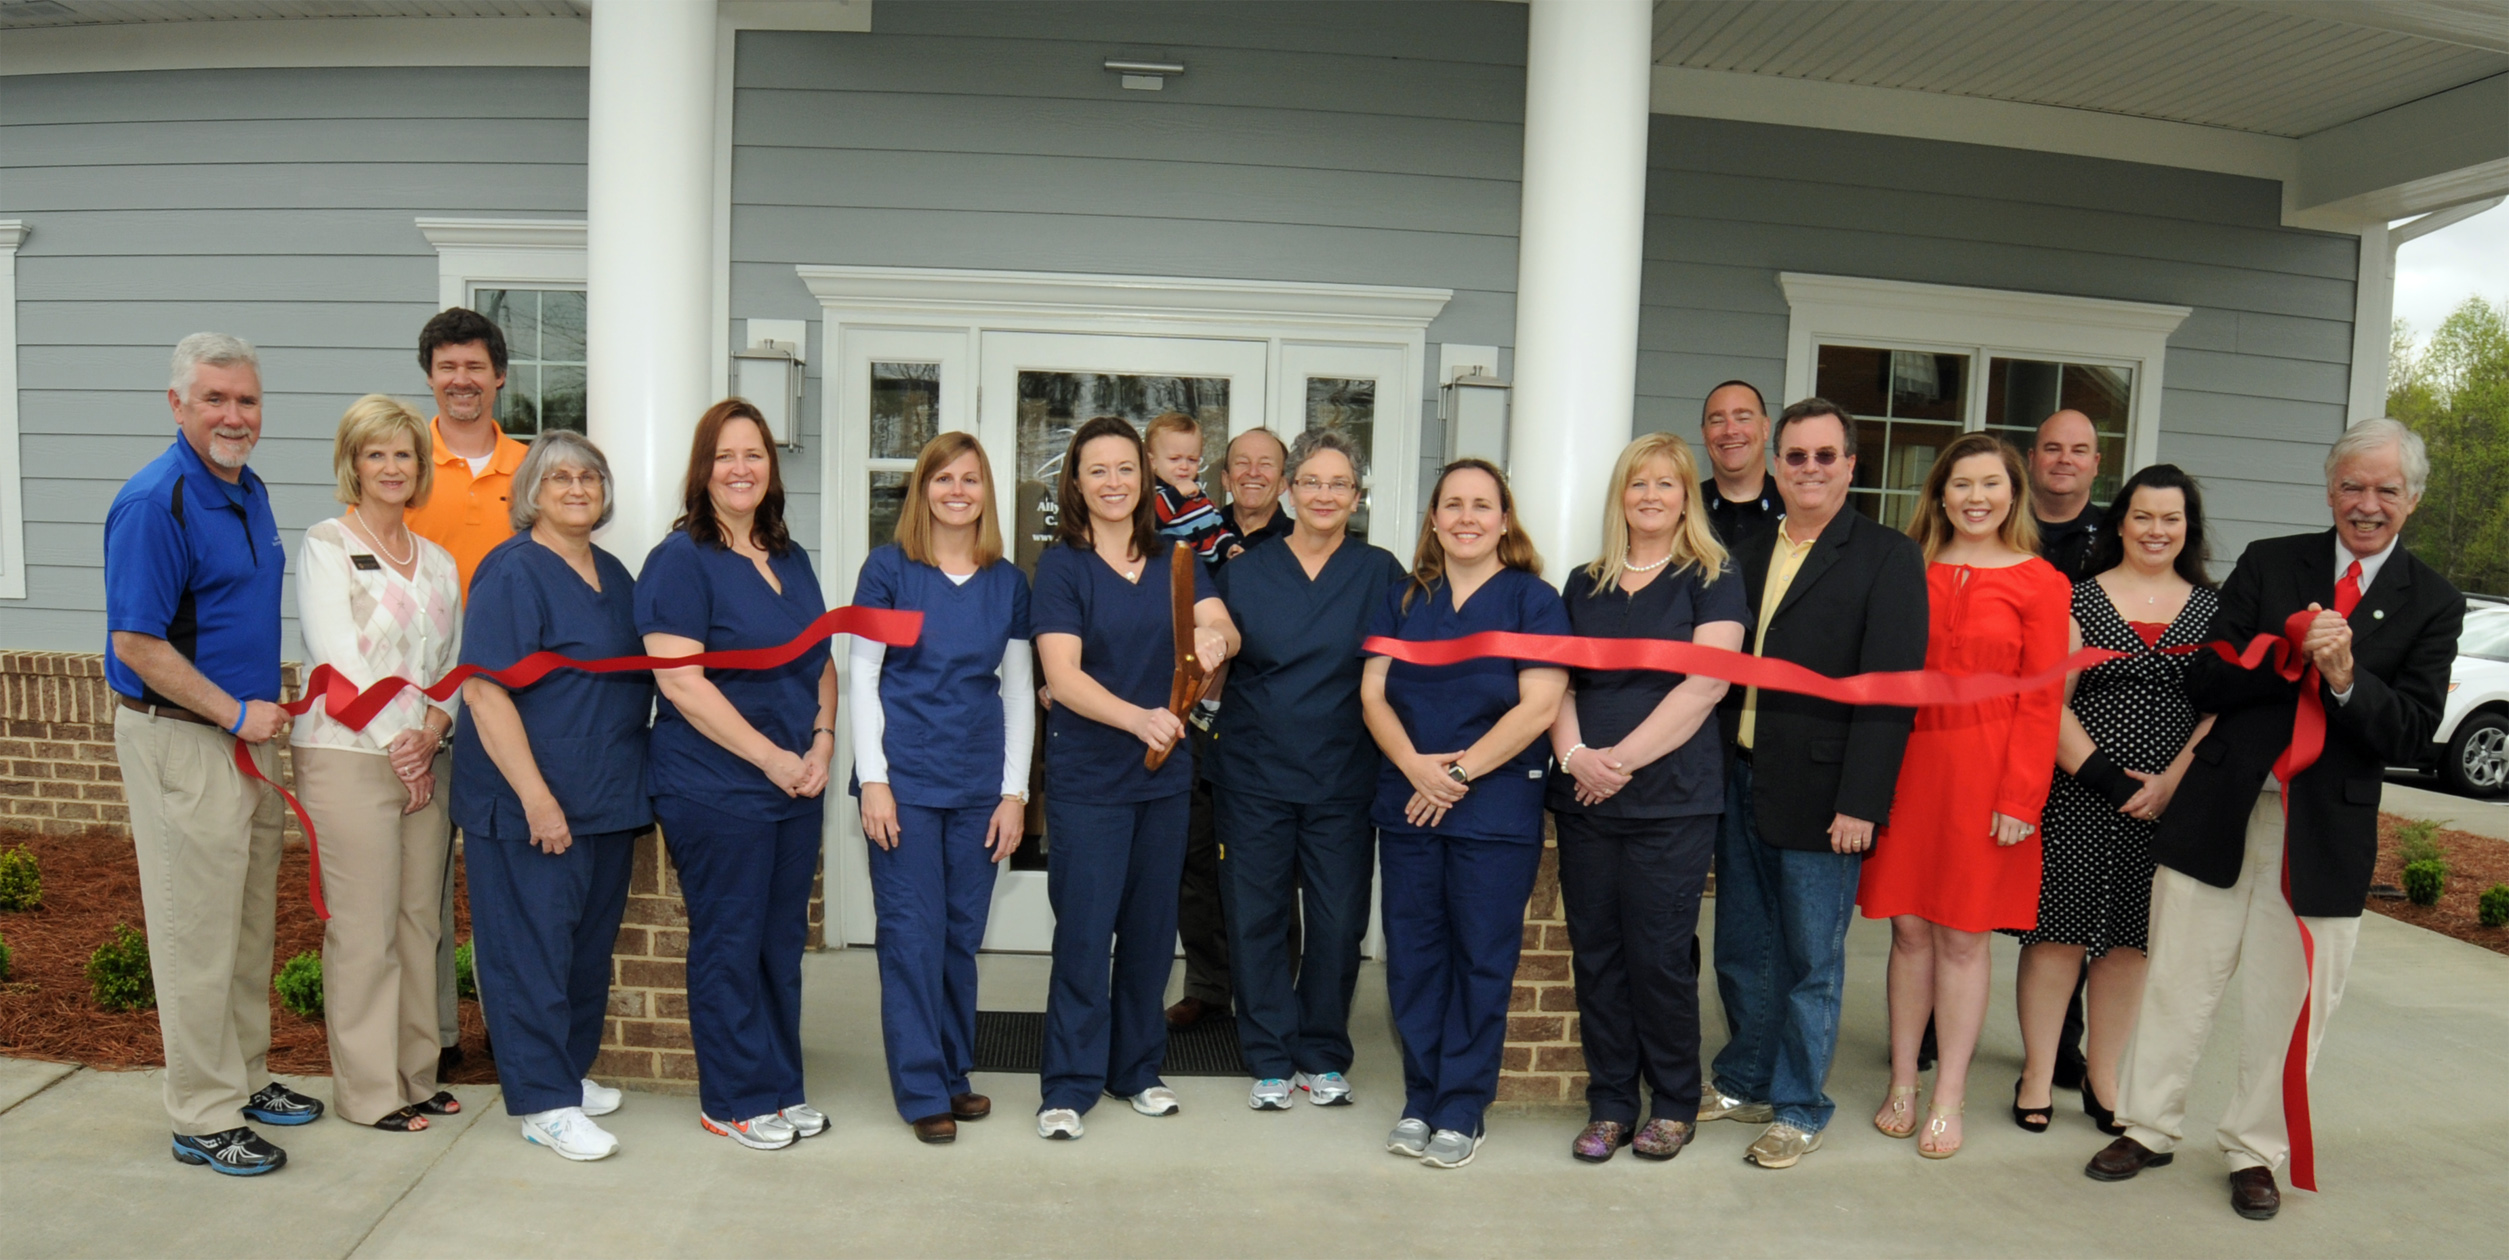 WATEREE FAMILY DENTISTRY